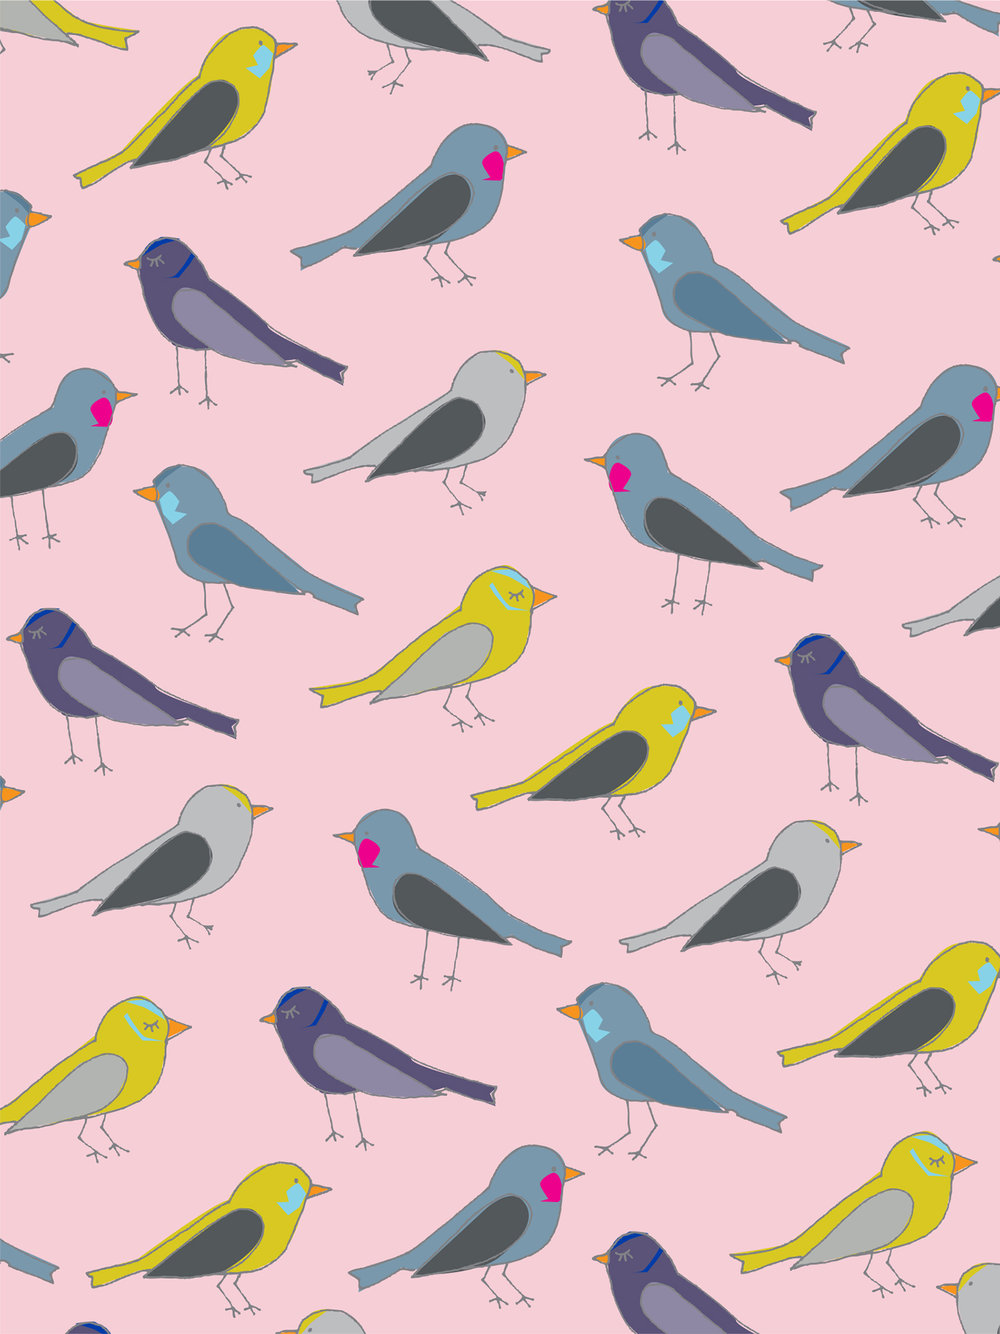 jami_darwin_flock_of_birds.jpg